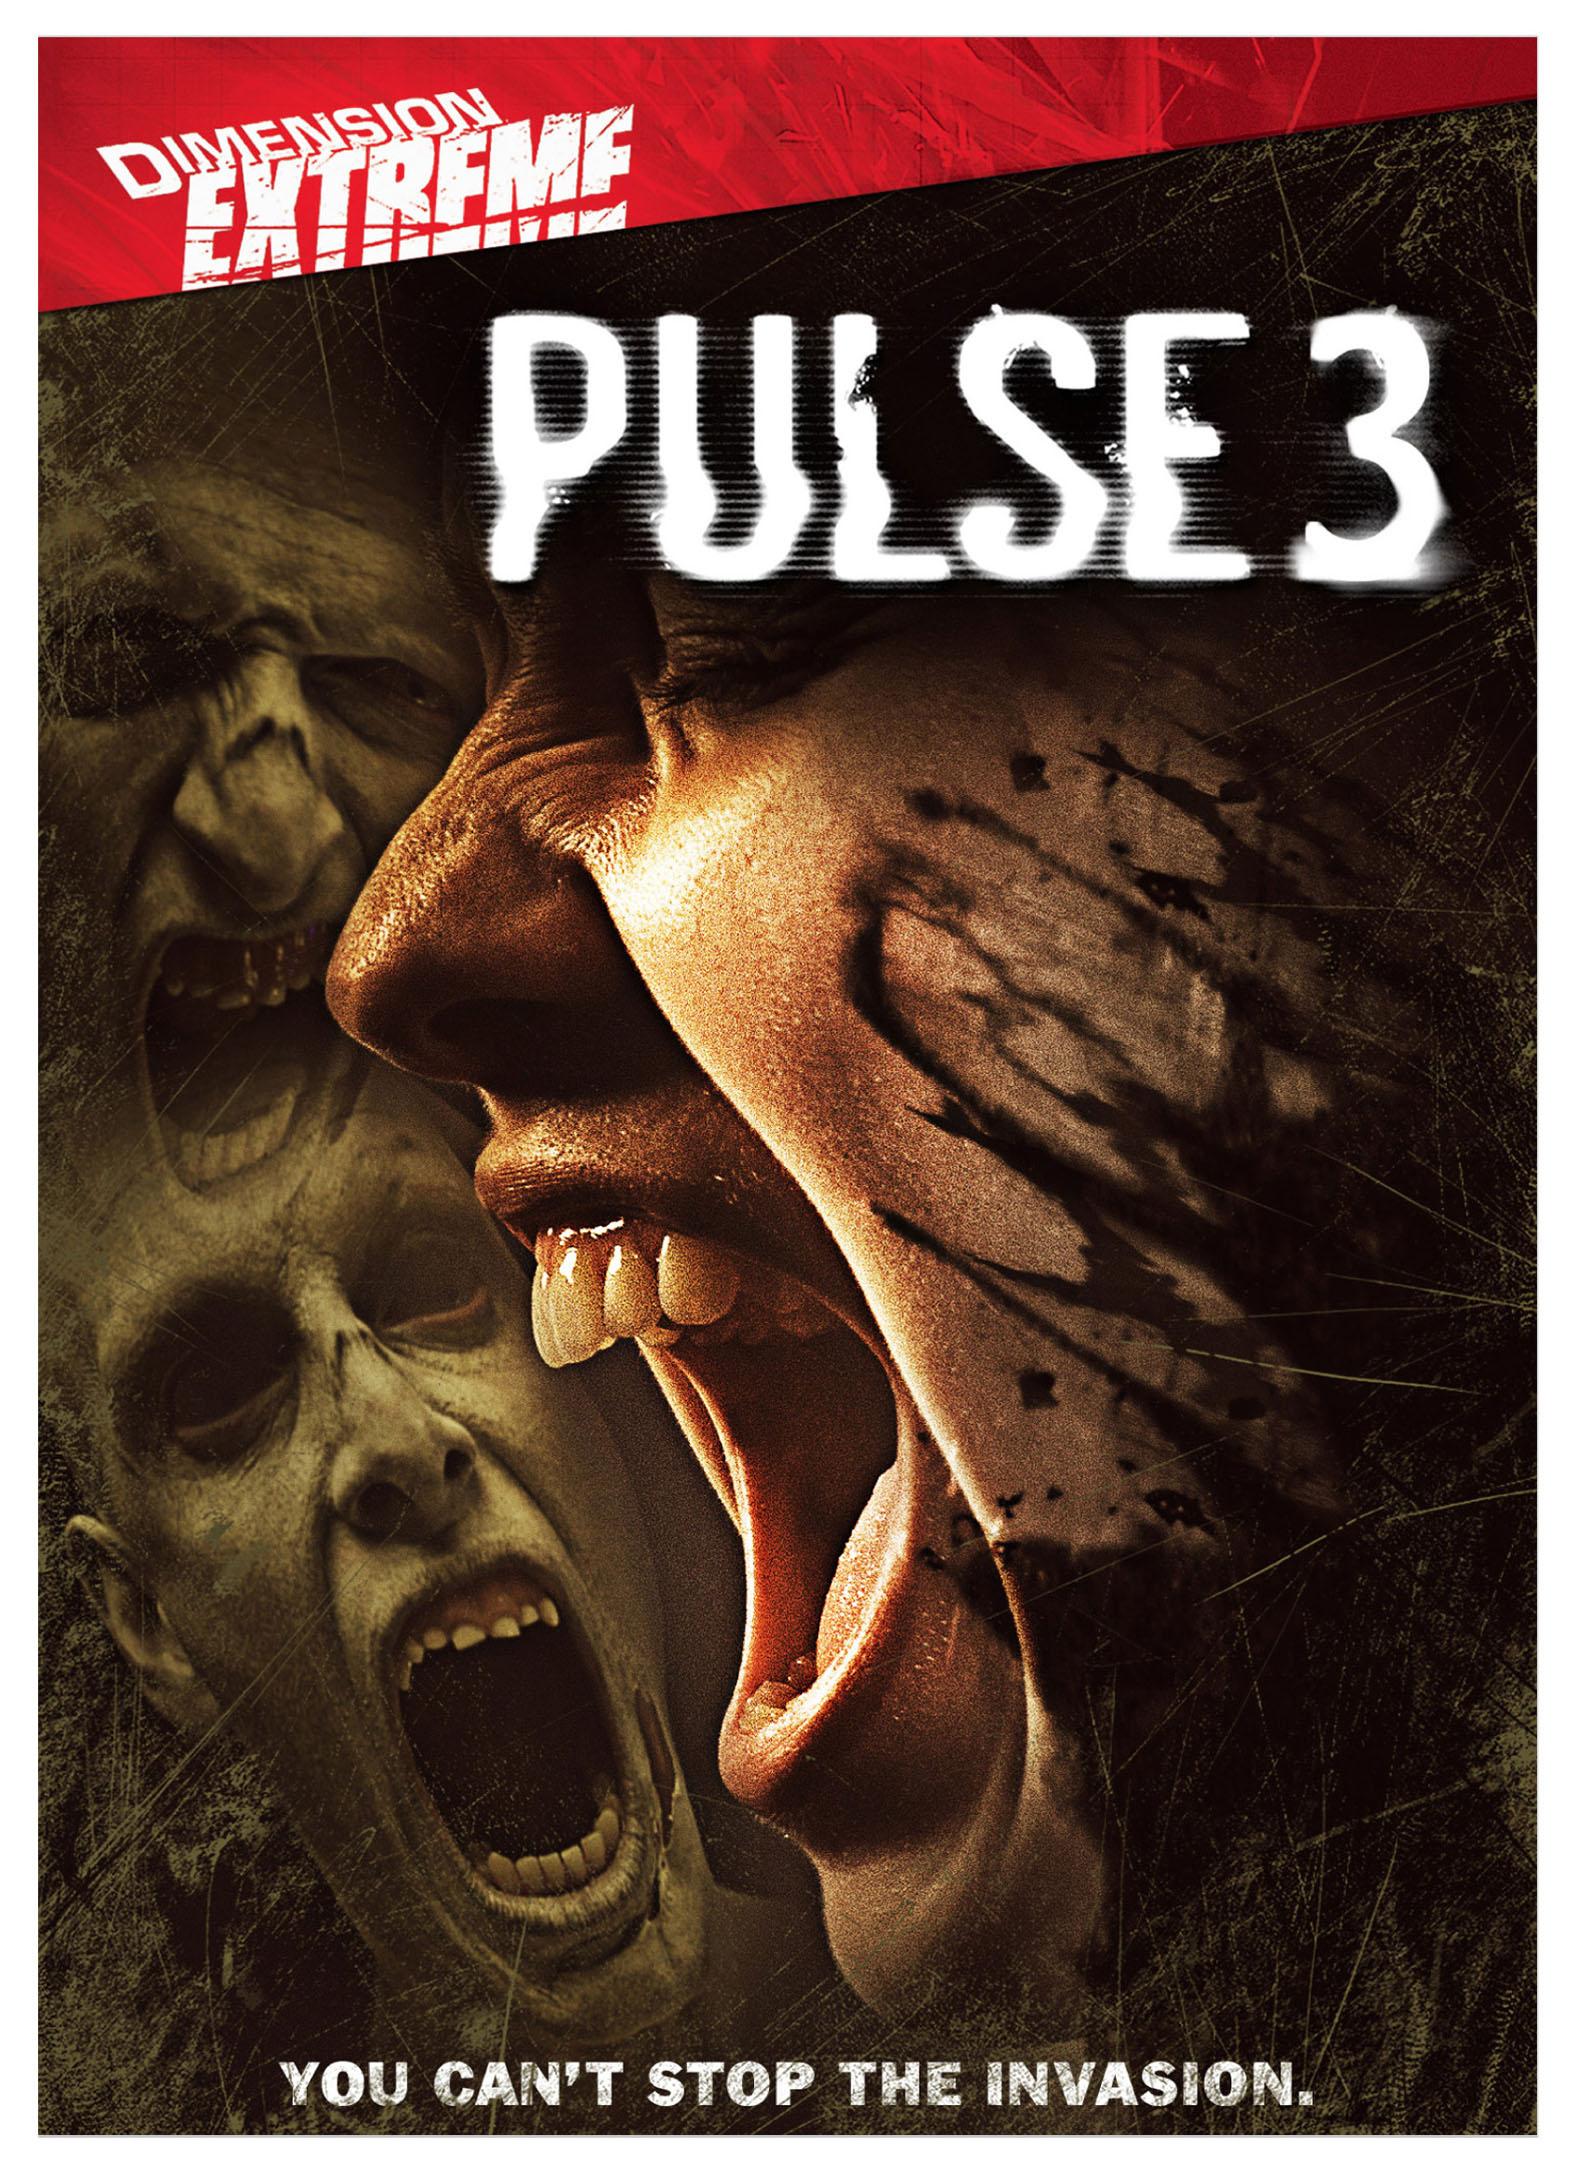 Pulse 3 - The Weinstein Company - Cinedigm Entertainment